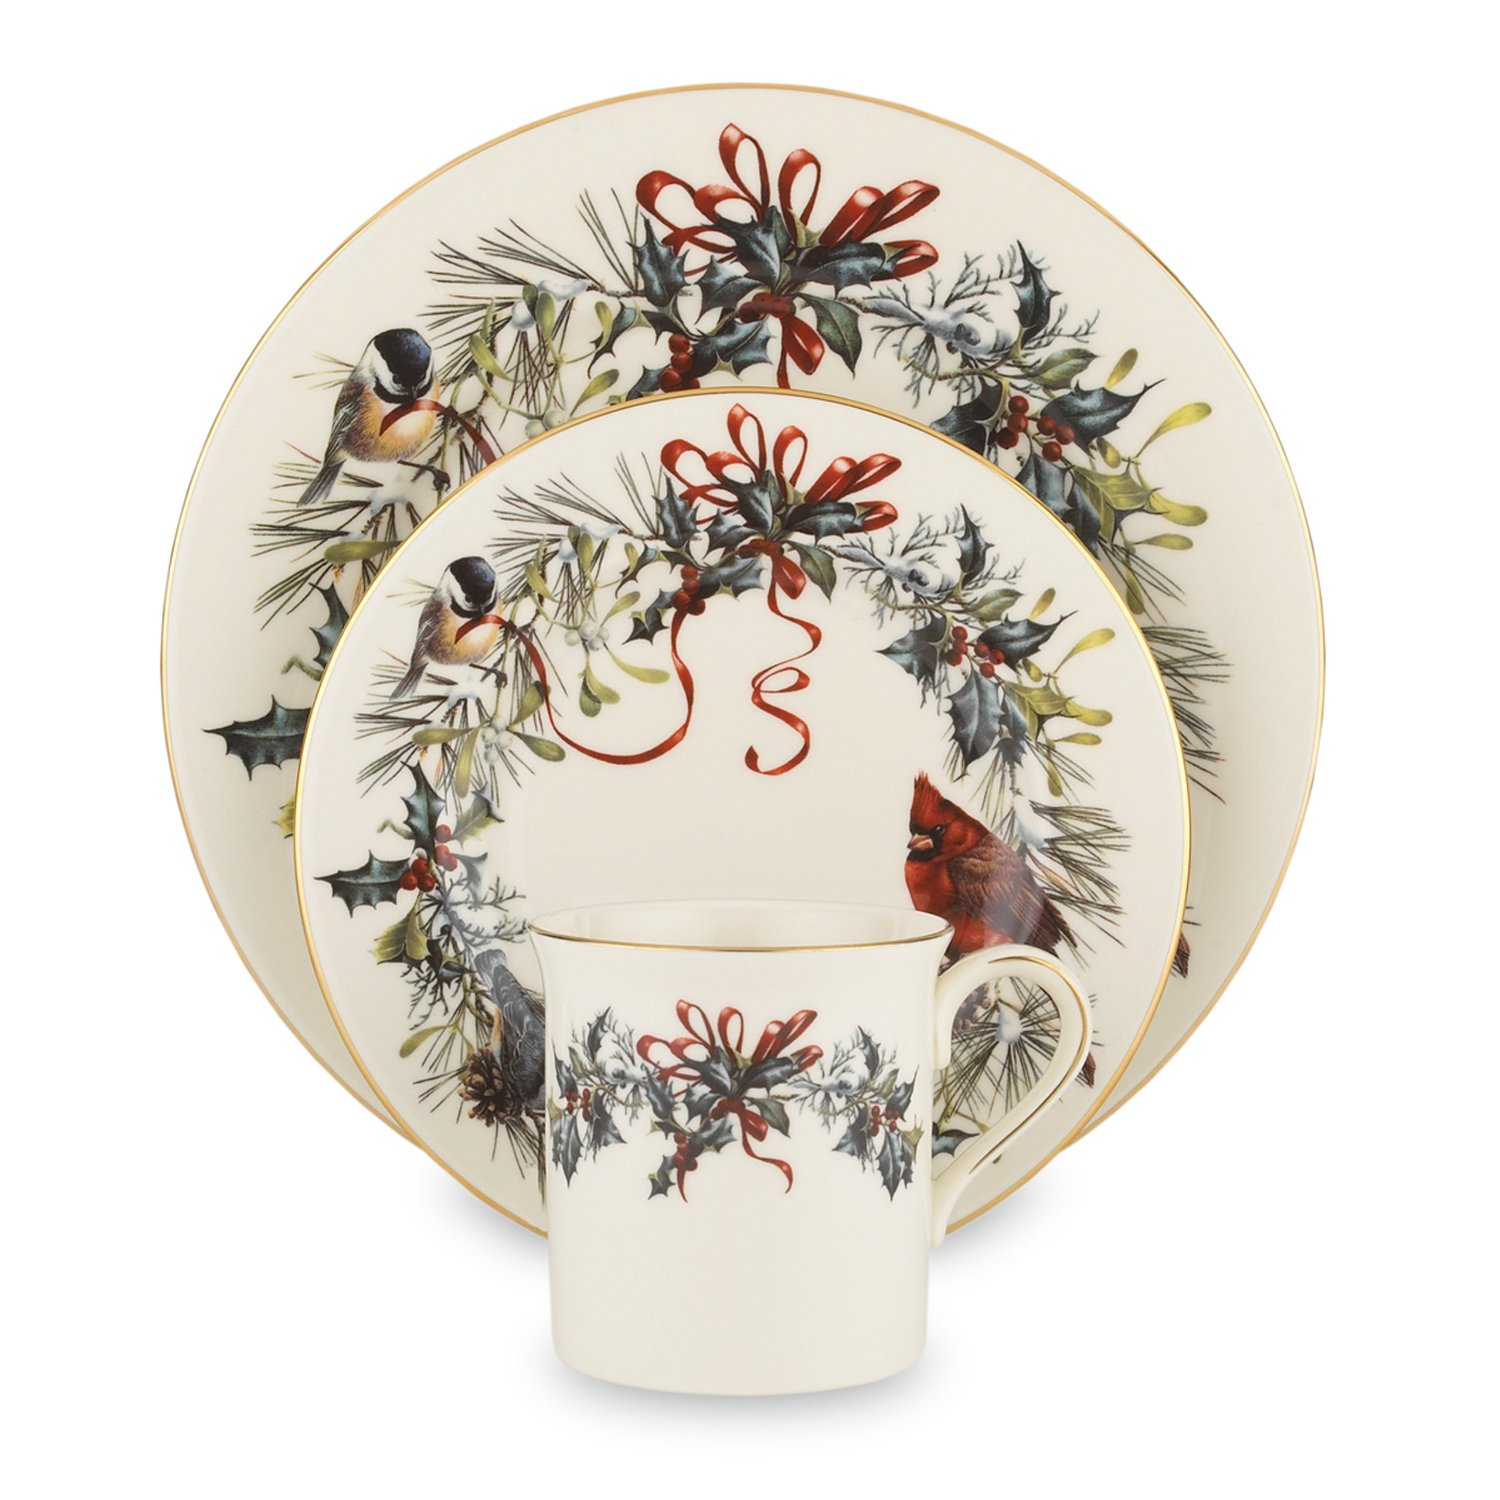 Creative Christmas Dinnerware for Christmas Decorating Ideas: Cool Christmas Dinnerware For Christmas Decorating Ideas With Christmas Dinnerware Sets Clearance